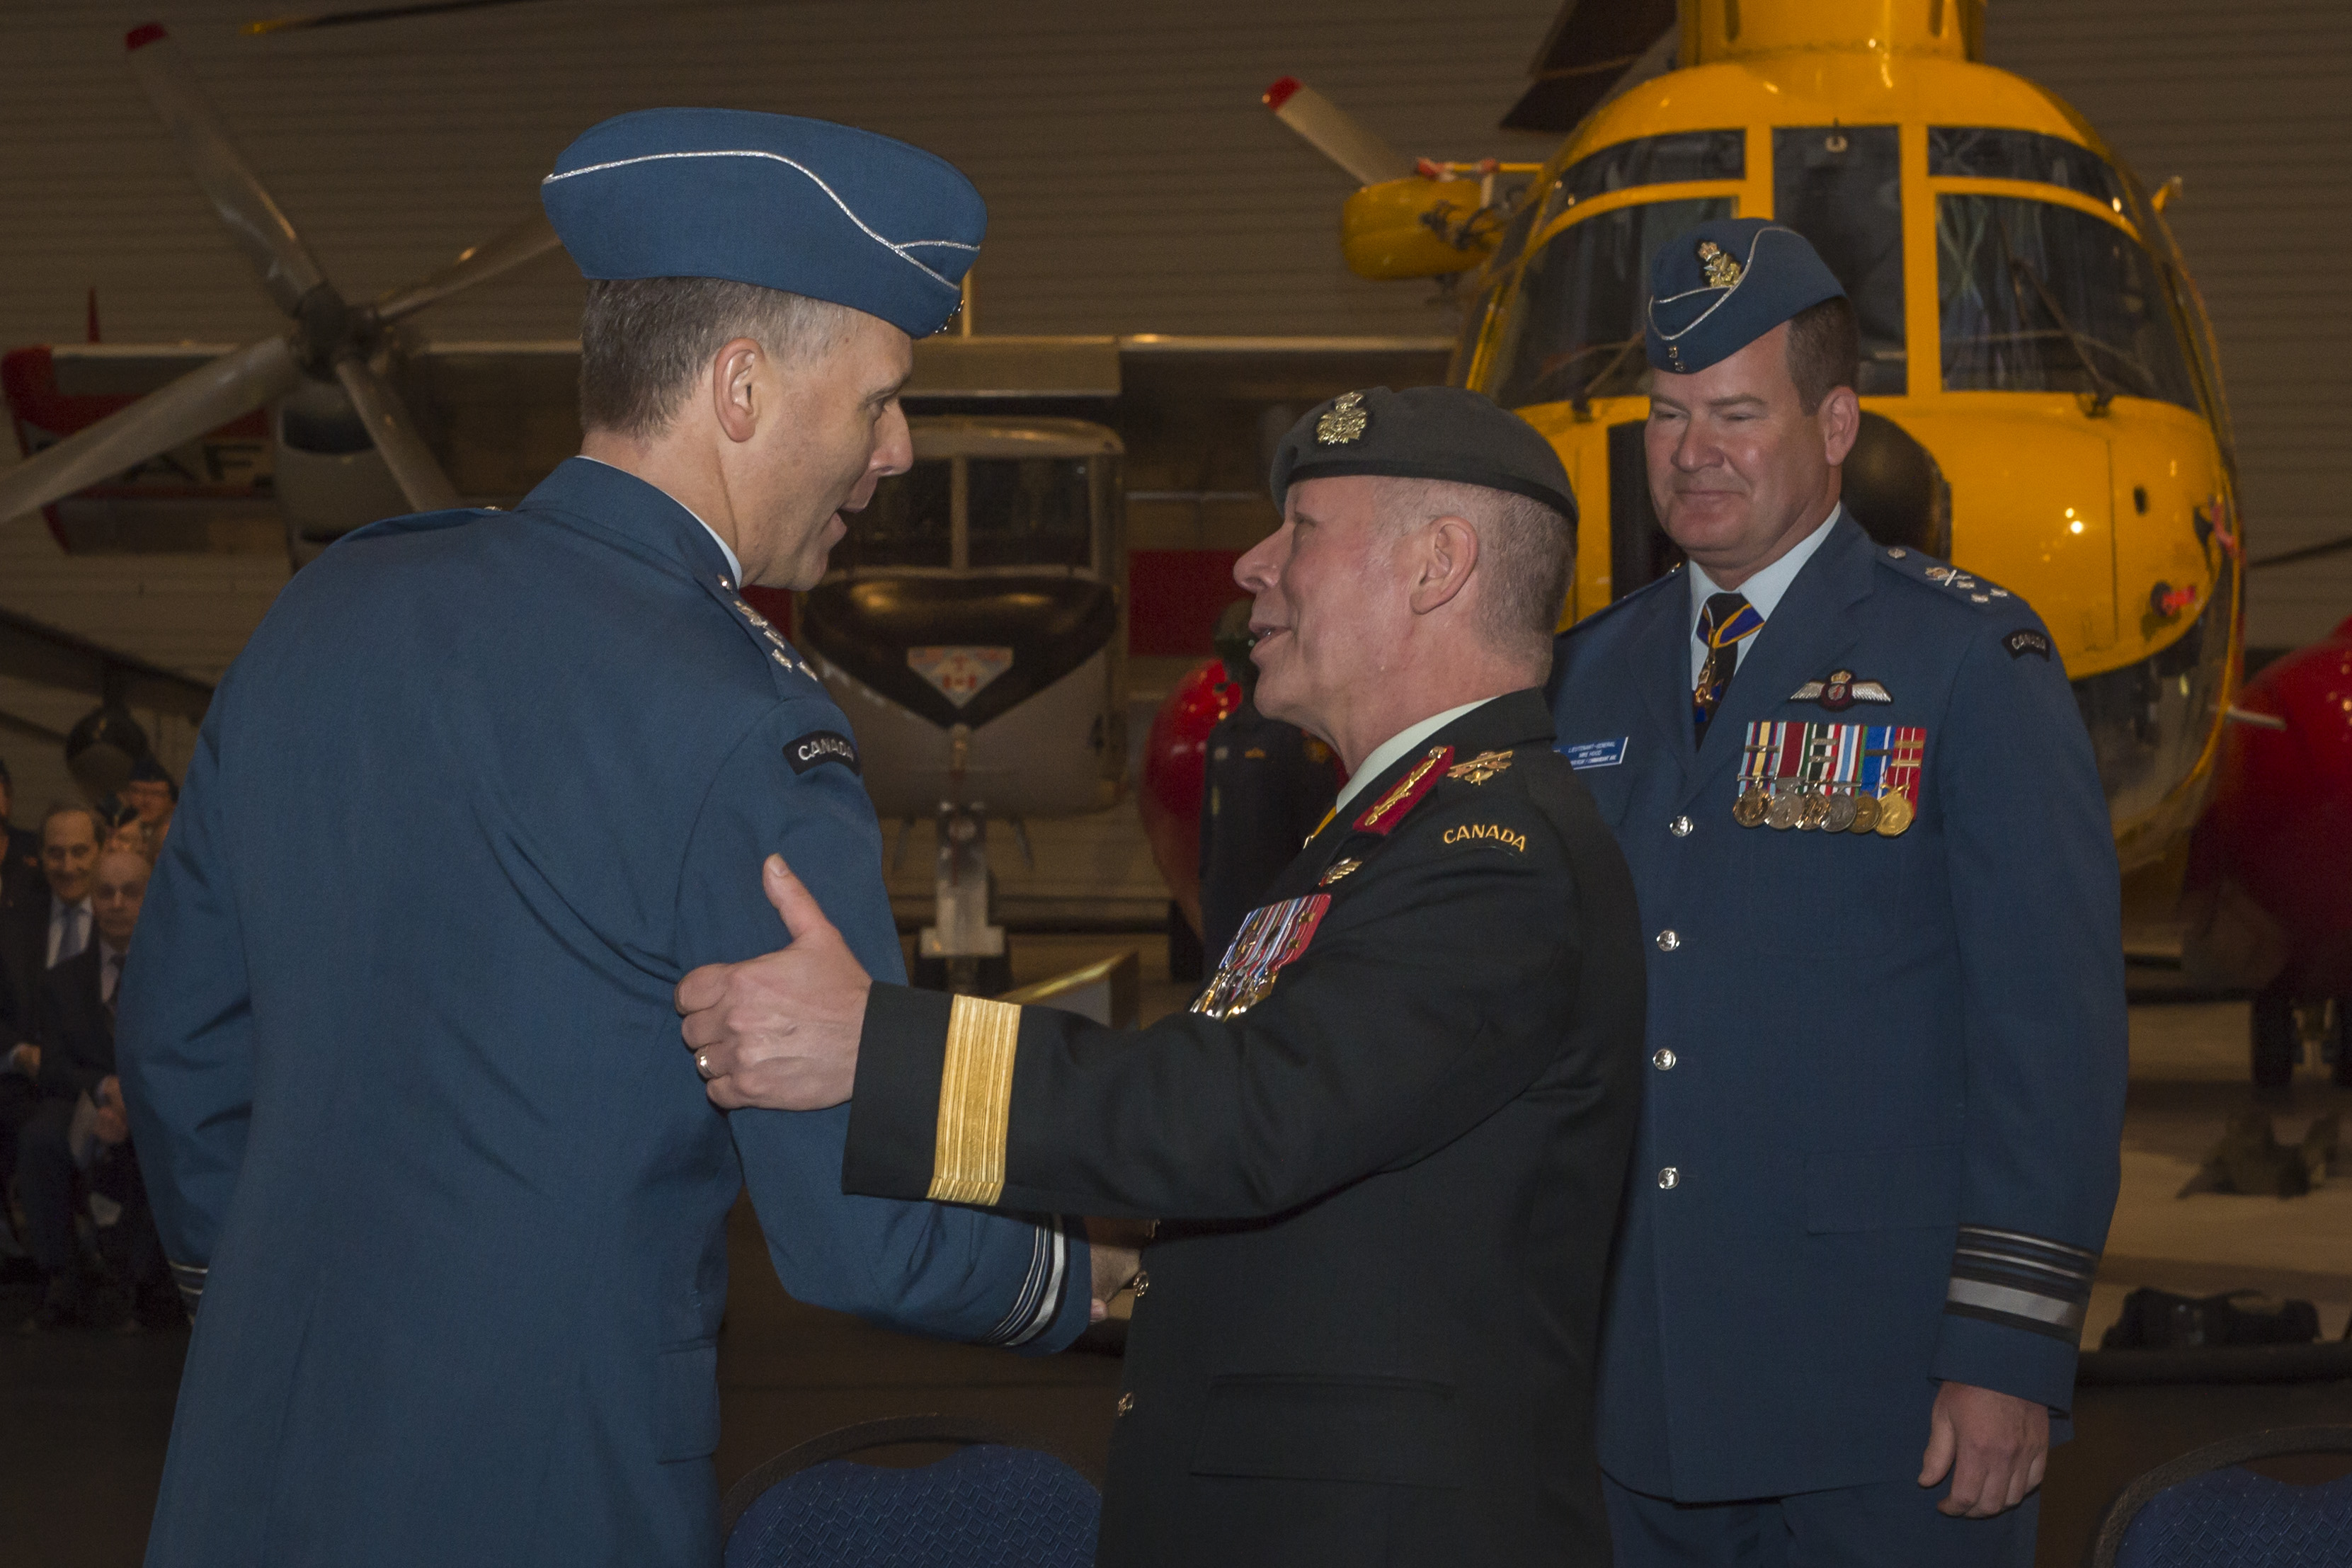 General Jonathan Vance (centre) congratulates Lieutenant-General Al Meinzinger on assuming command of the Royal Canadian Air Force as the former commander, Lieutenant-General Mike Hood looks on. PHOTO: Corporal Alana Morin, FA03-2018-0040-003